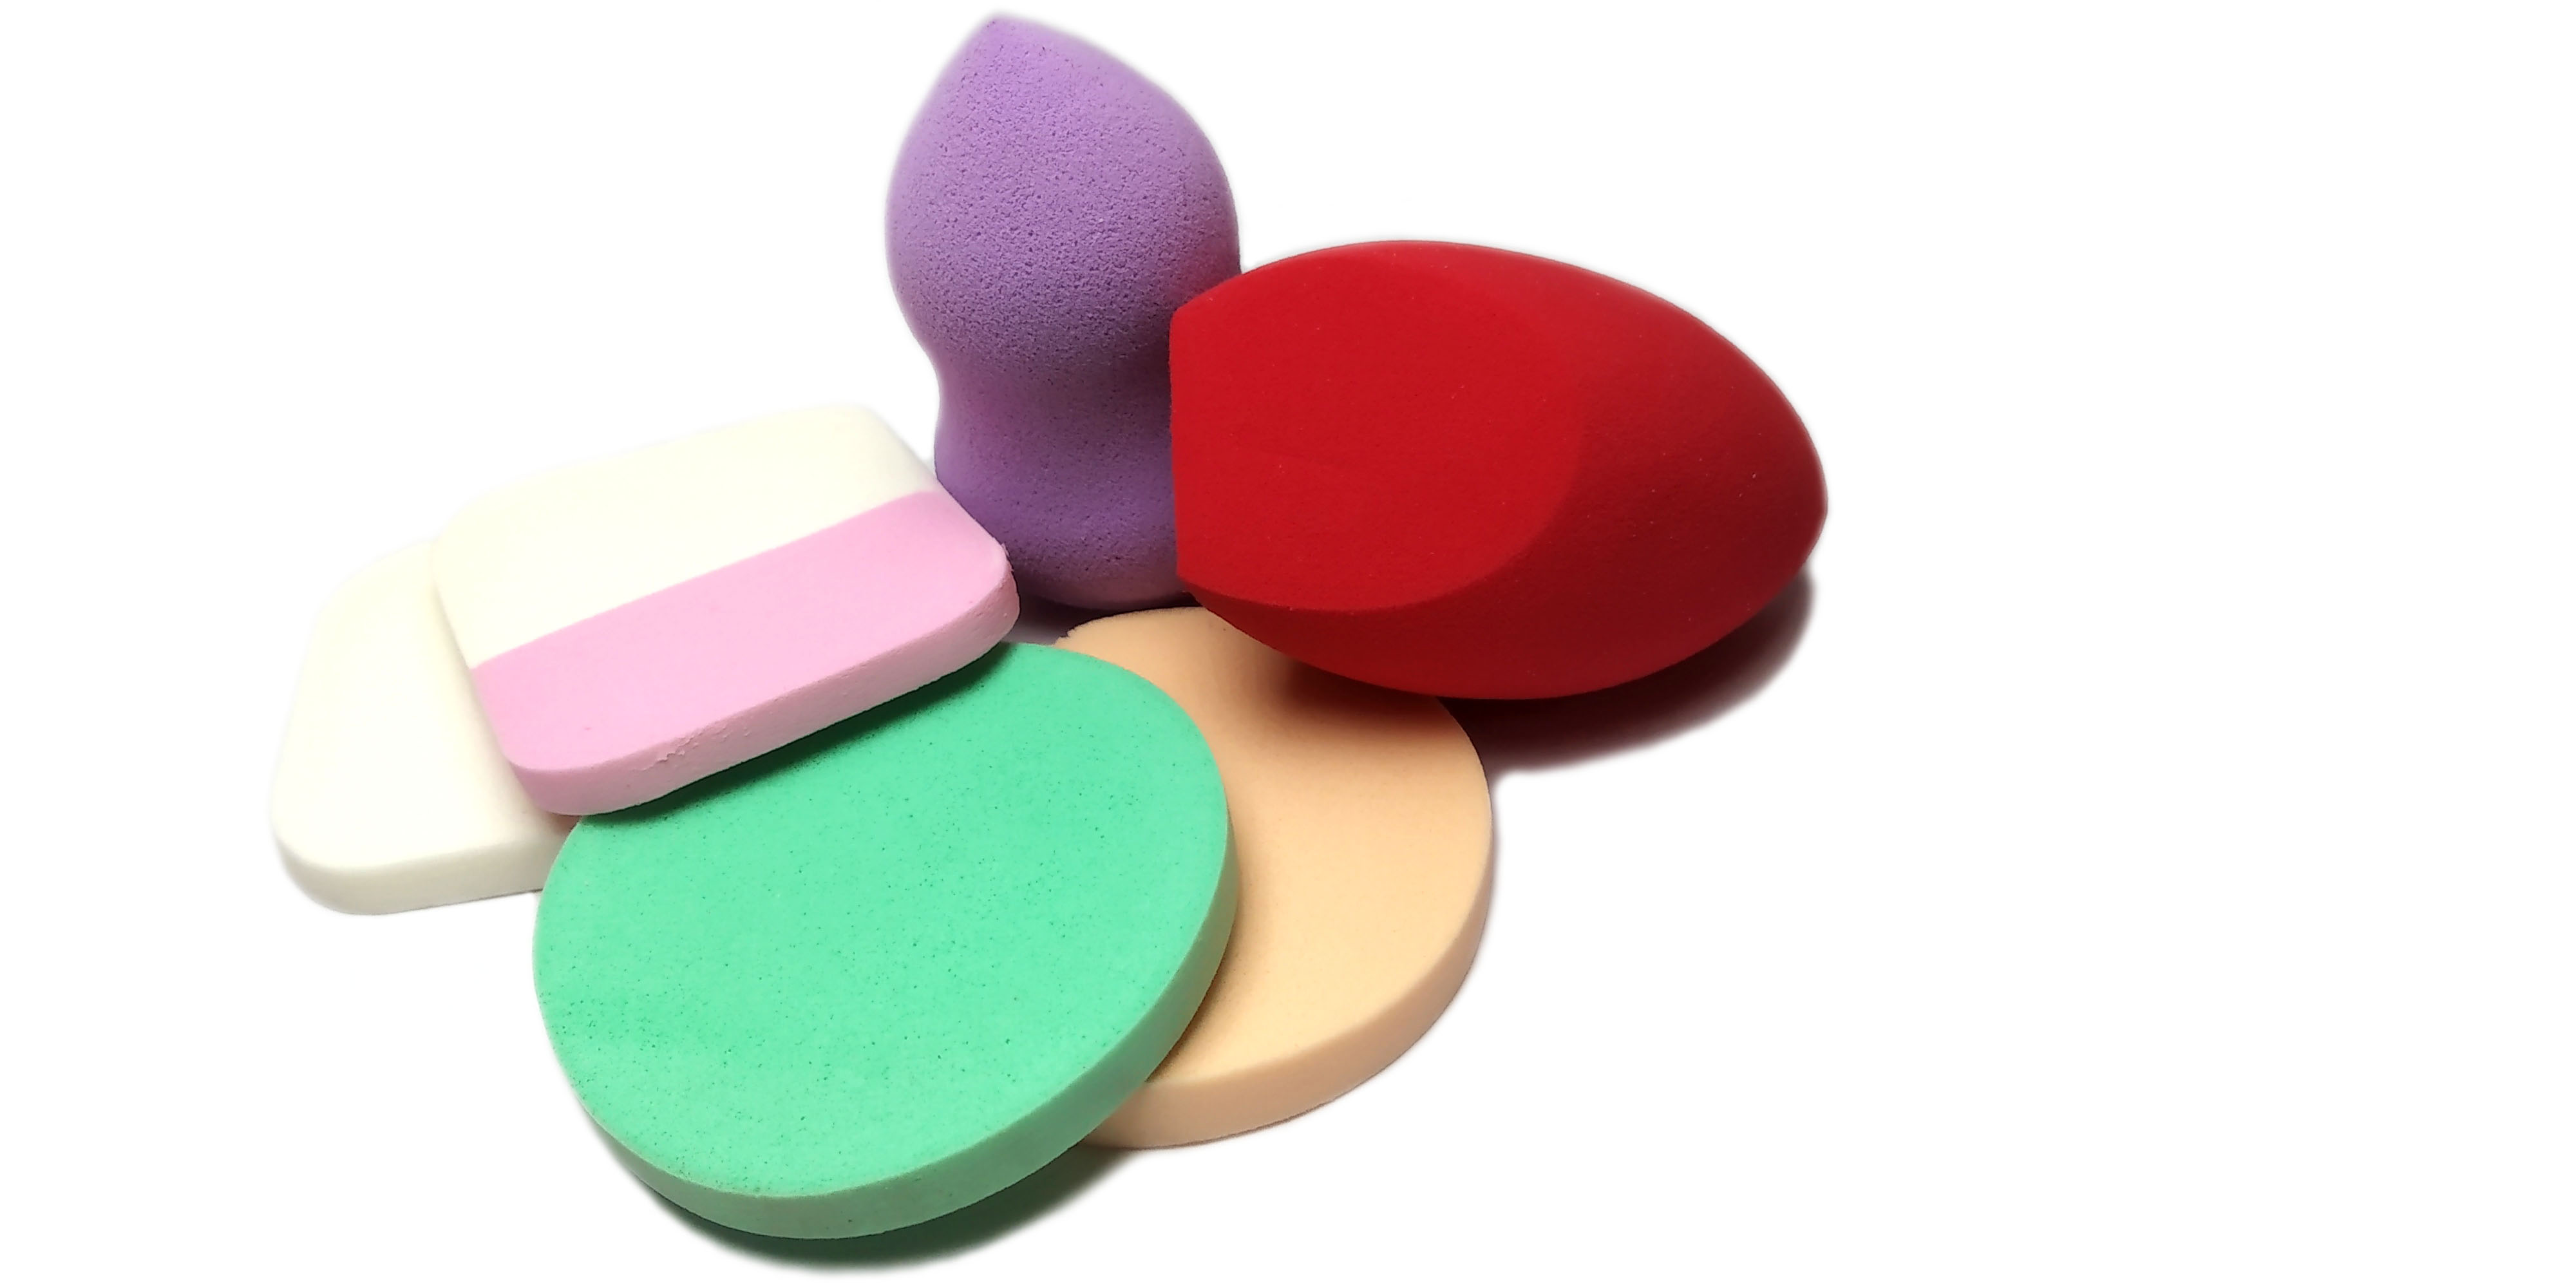 Beauty Blender Makeup Sponge Set Of 6